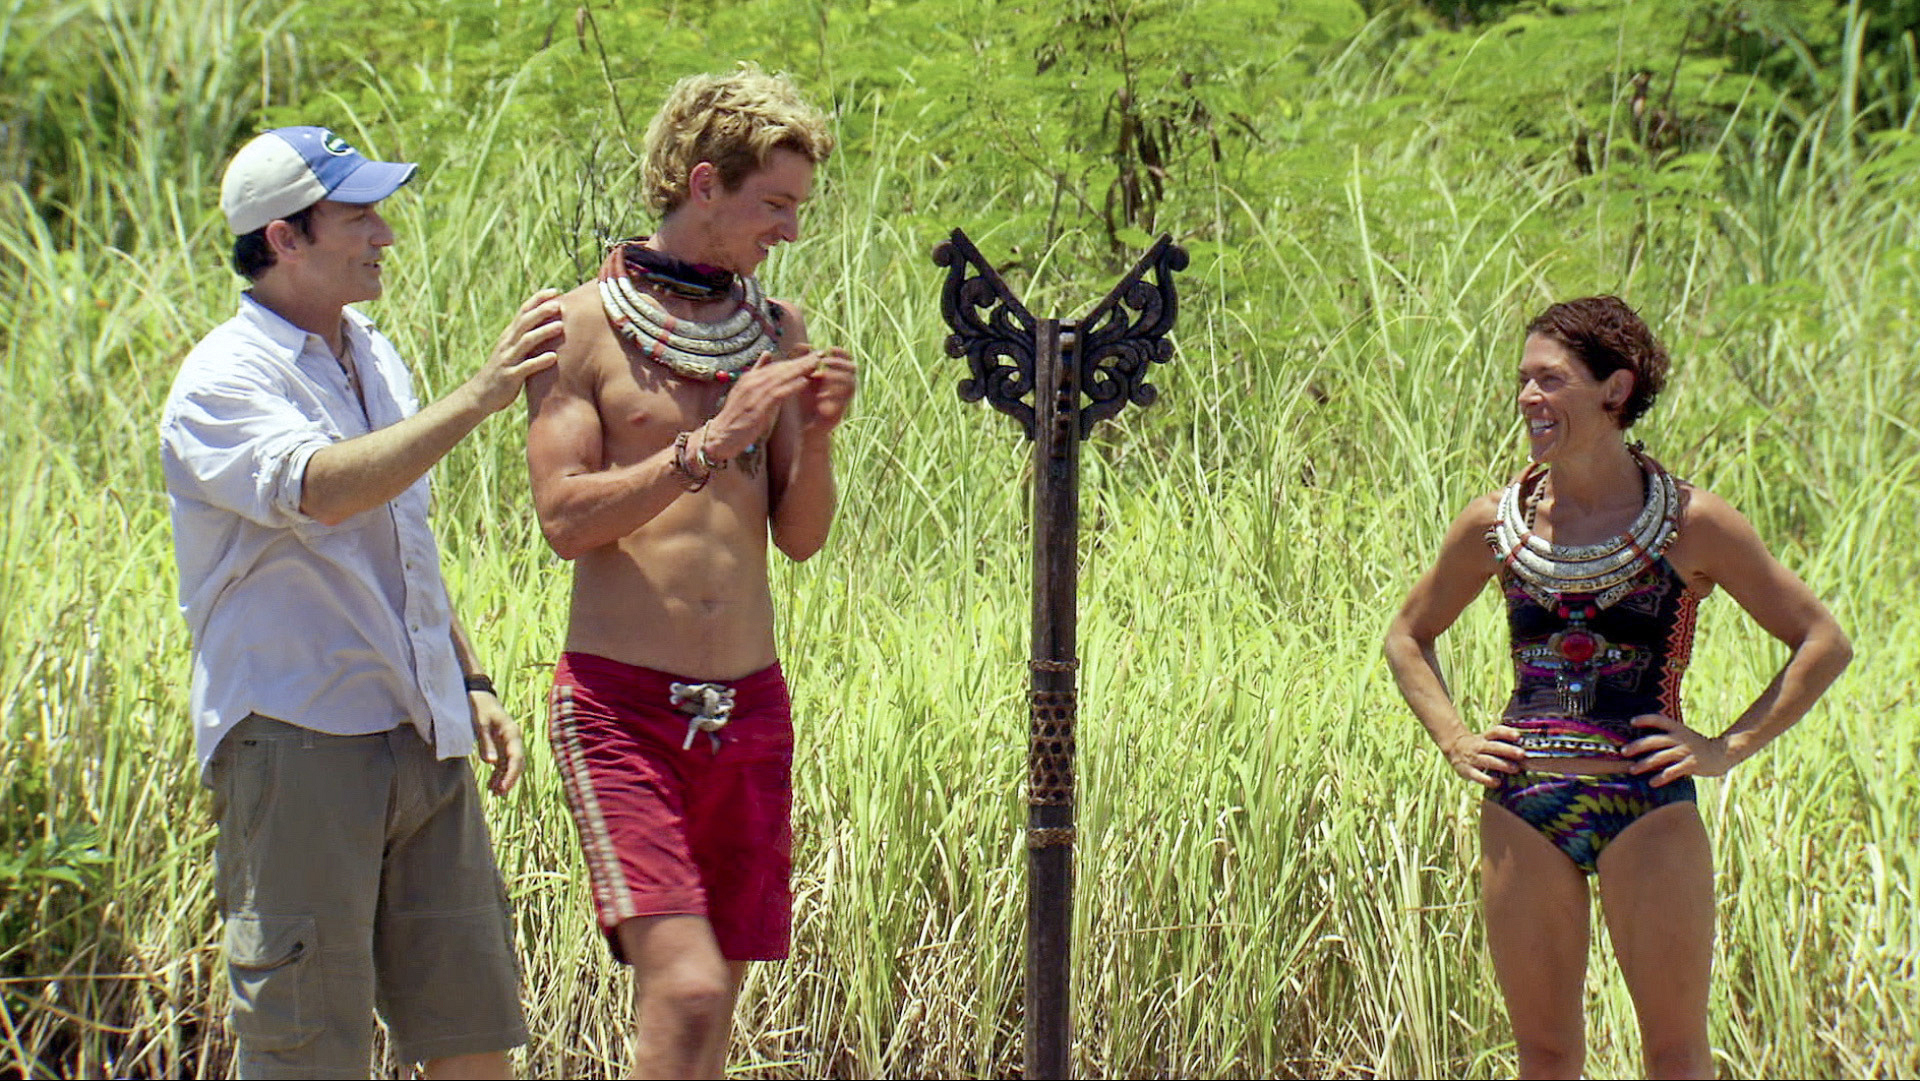 Carter and Denise win Immunity